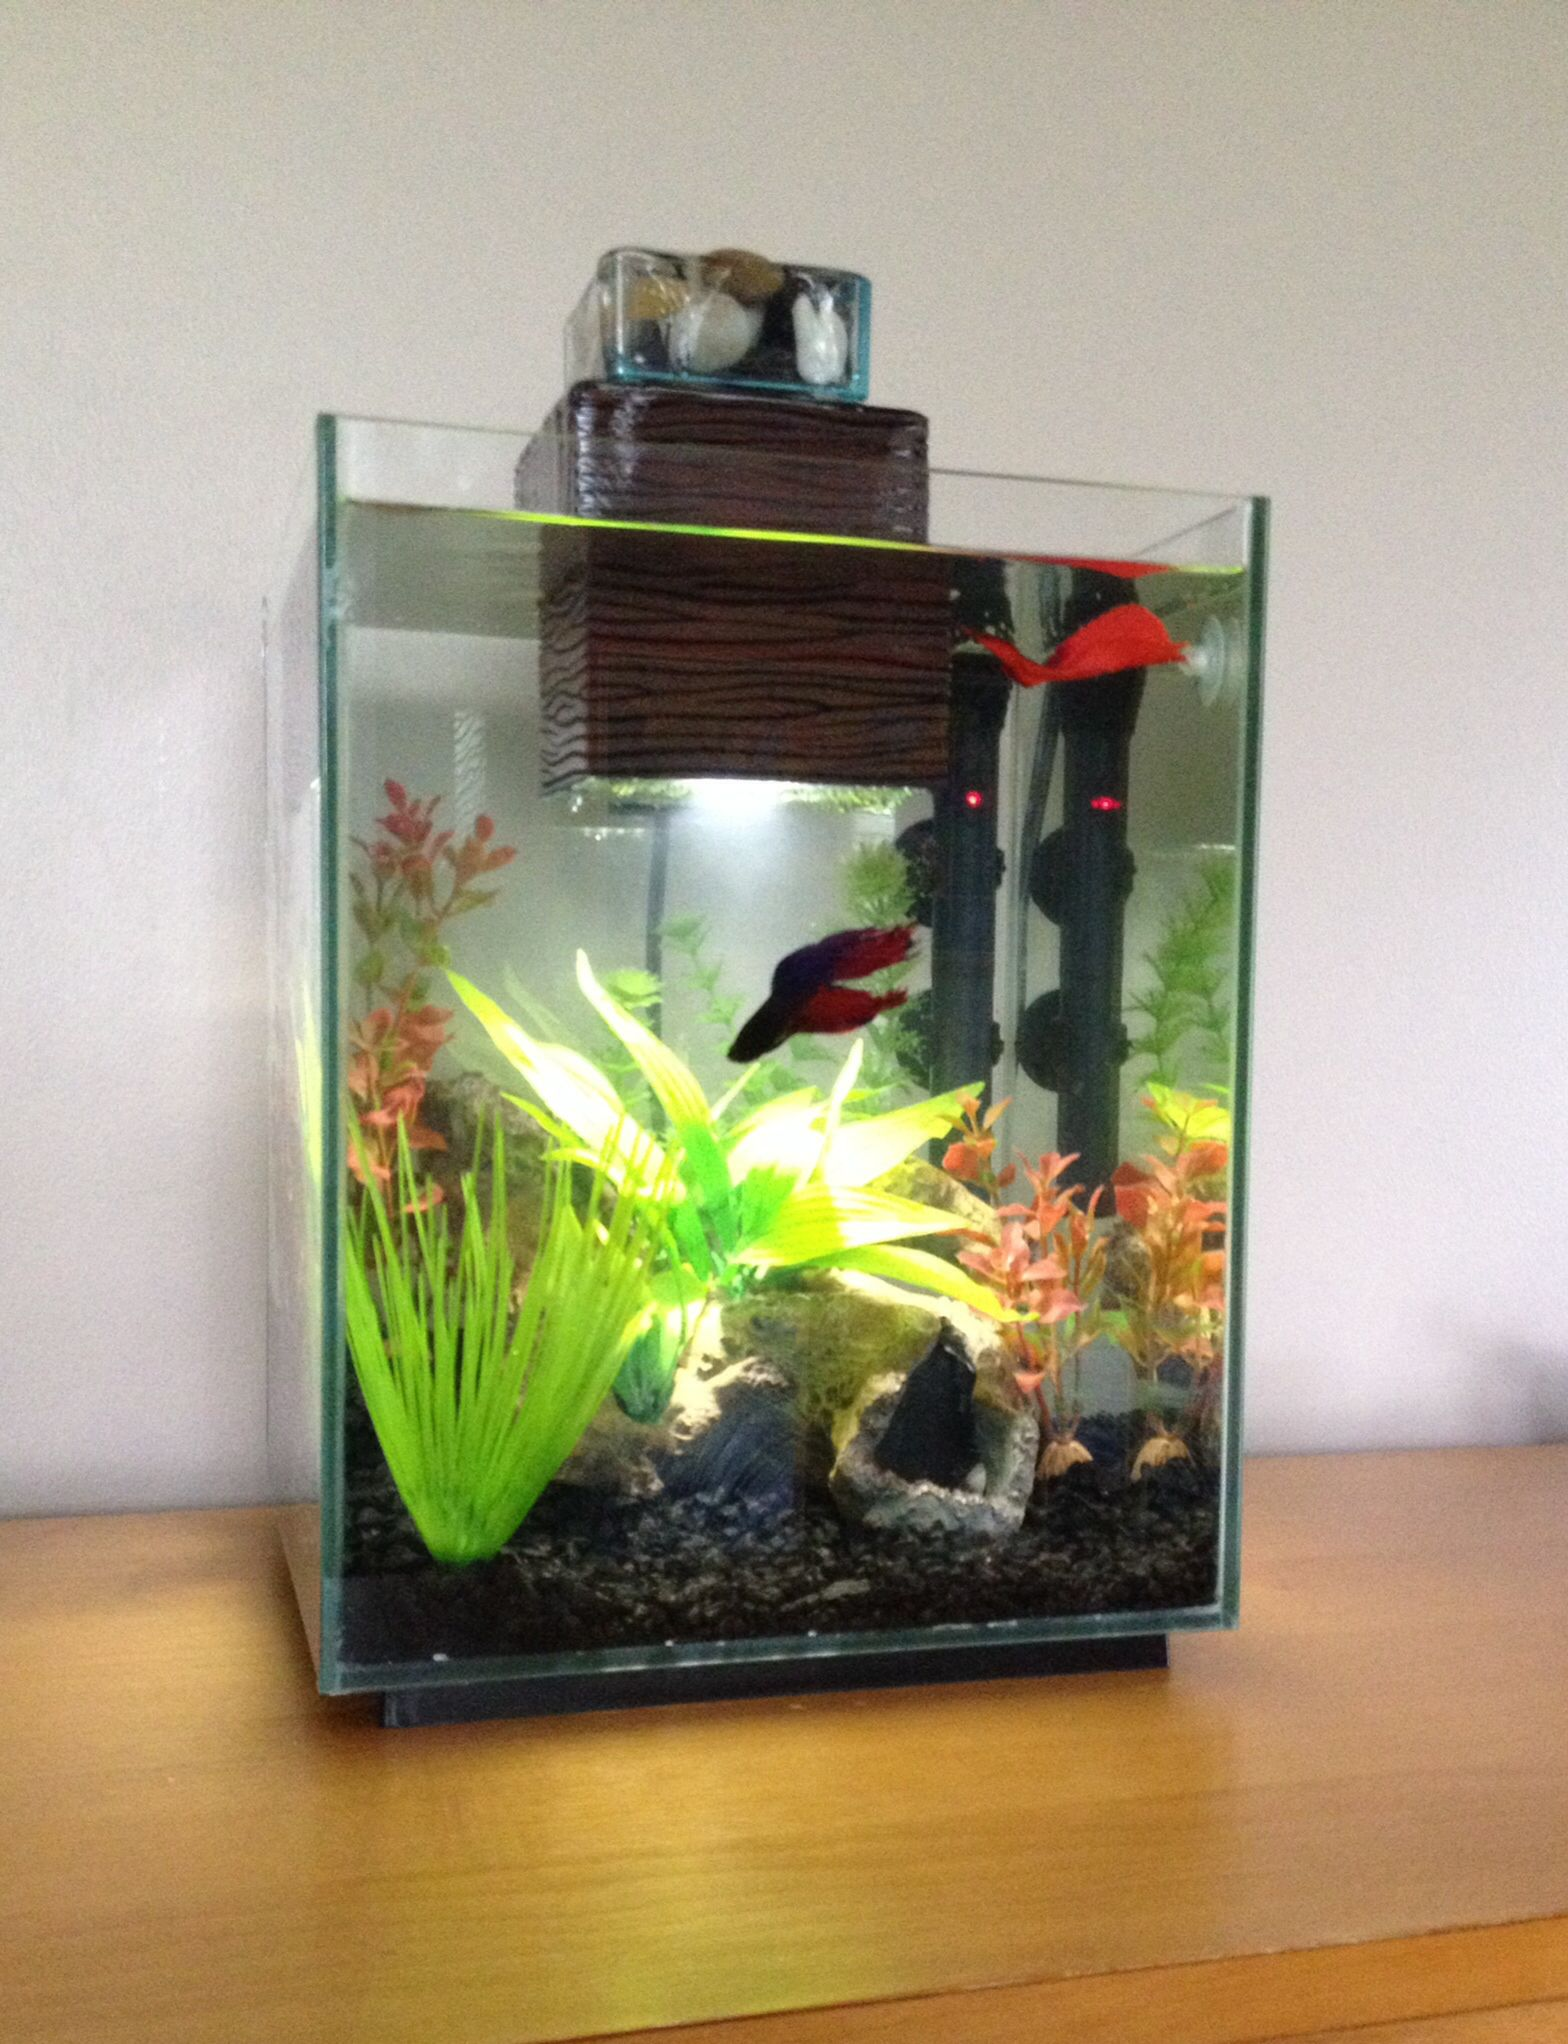 My 5 Gallon Betta Tank Setup Fishy Betta Tank Betta Betta Fish